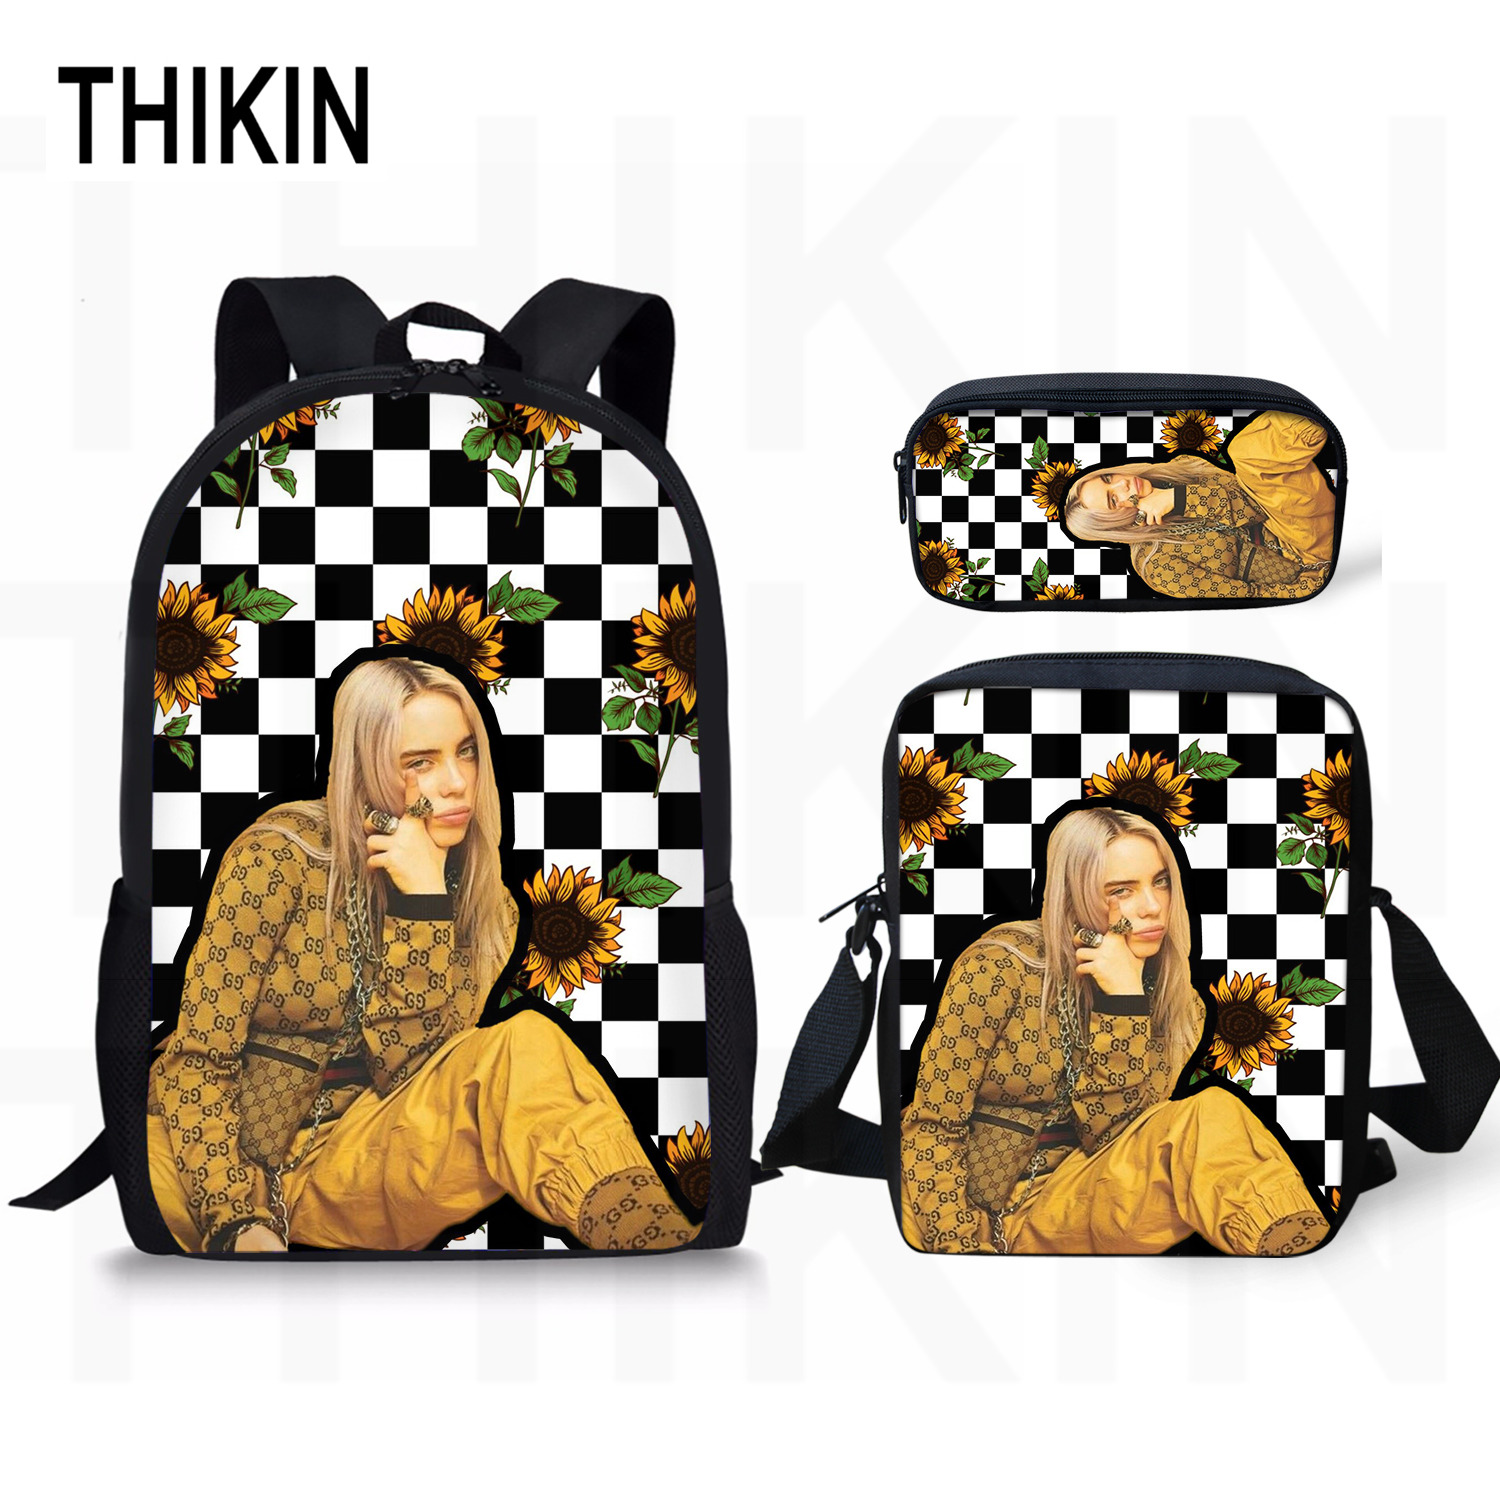 THIKIN Hip Hop Rapper Billie Eilish Backpack School Bags for Teenagers Girls Students Laptop Backpack Women Sunflower Travel Bag in School Bags from Luggage Bags